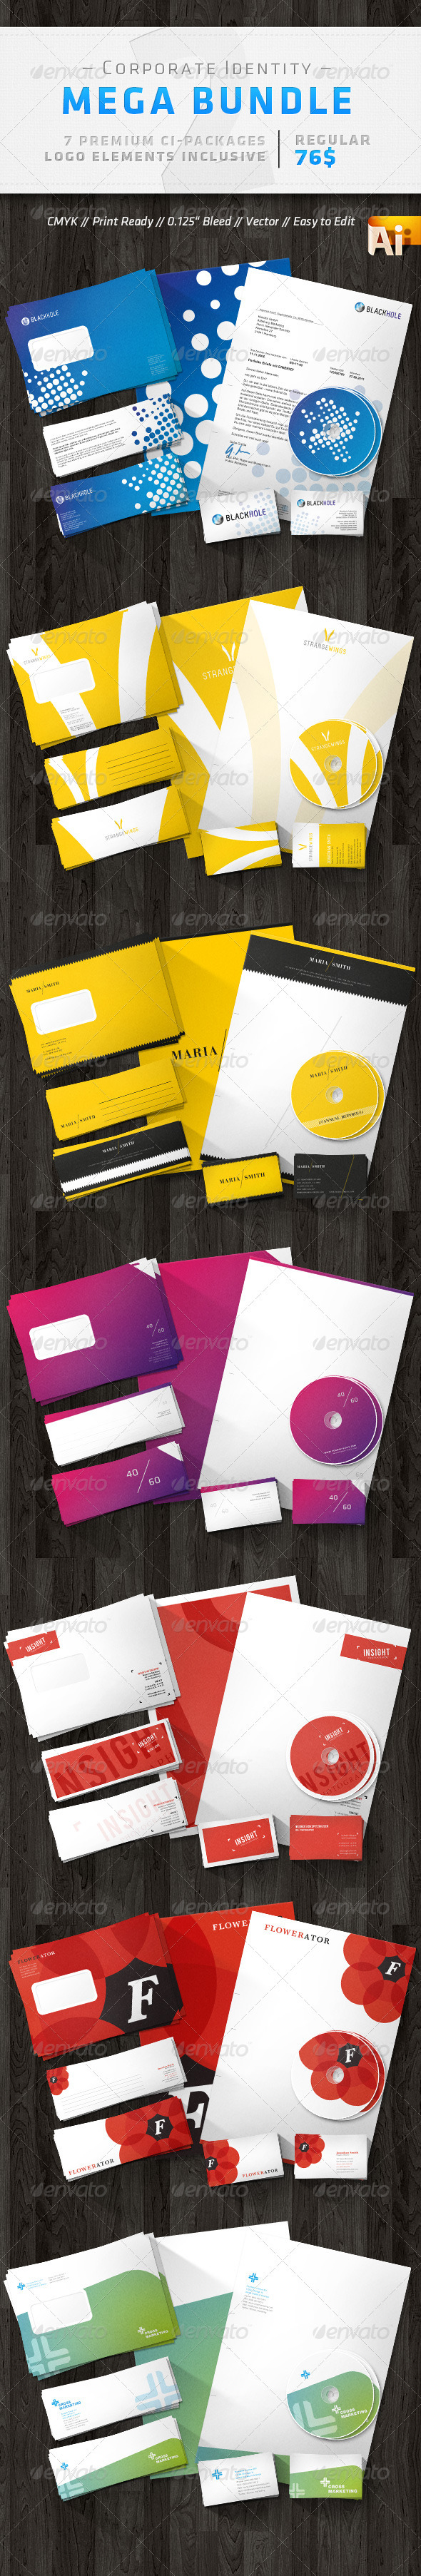 preview_professional_corporate_identity_design_package_presentation